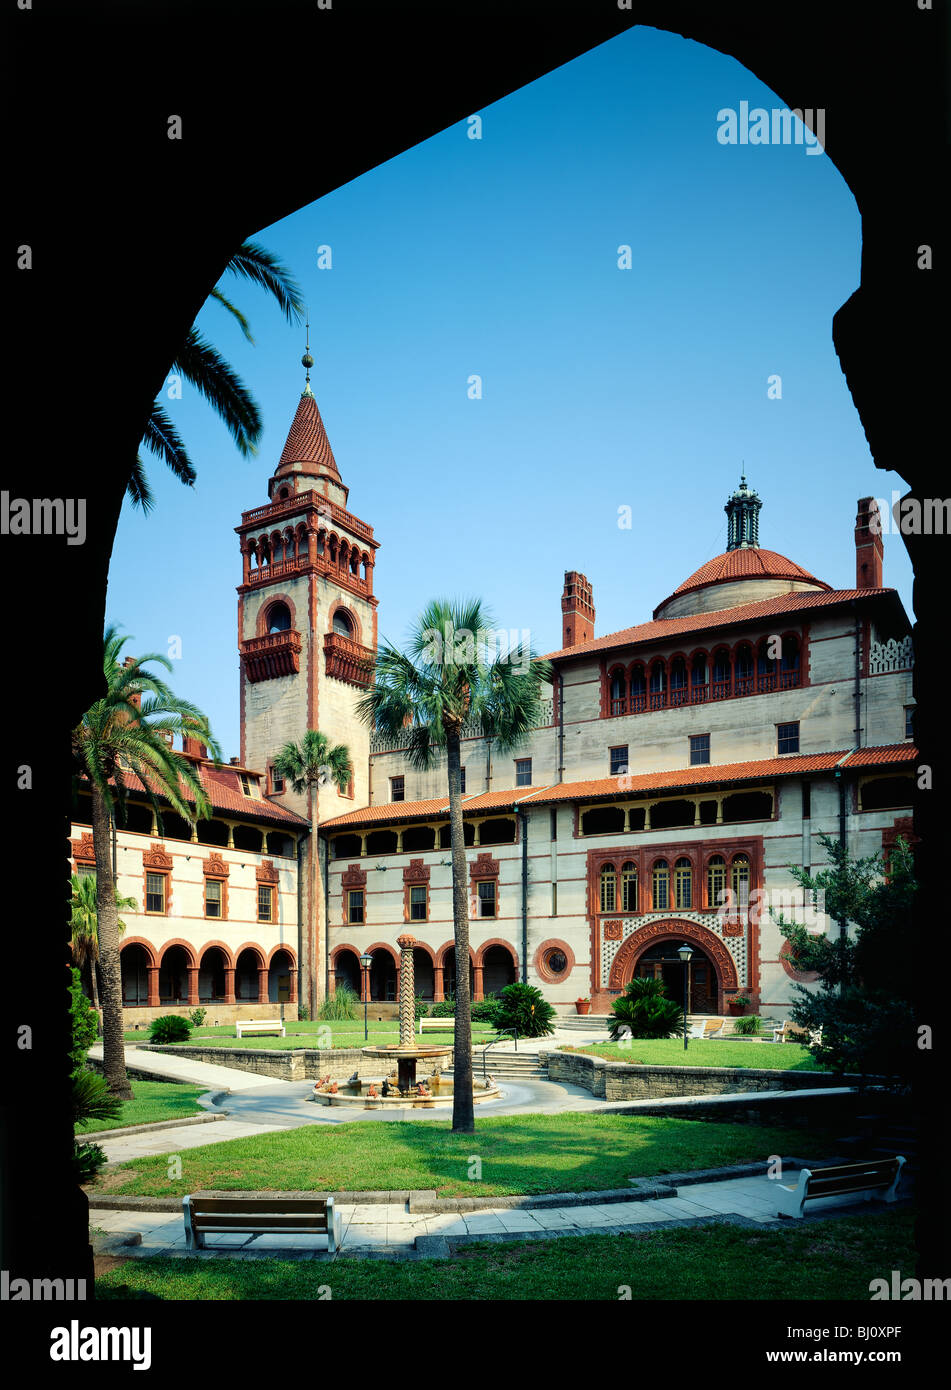 Good Building At Flagler College, 1888 Spanish Renaissance Style Architecture,  Originally Built As A Hotel, St. Augustine, Florida